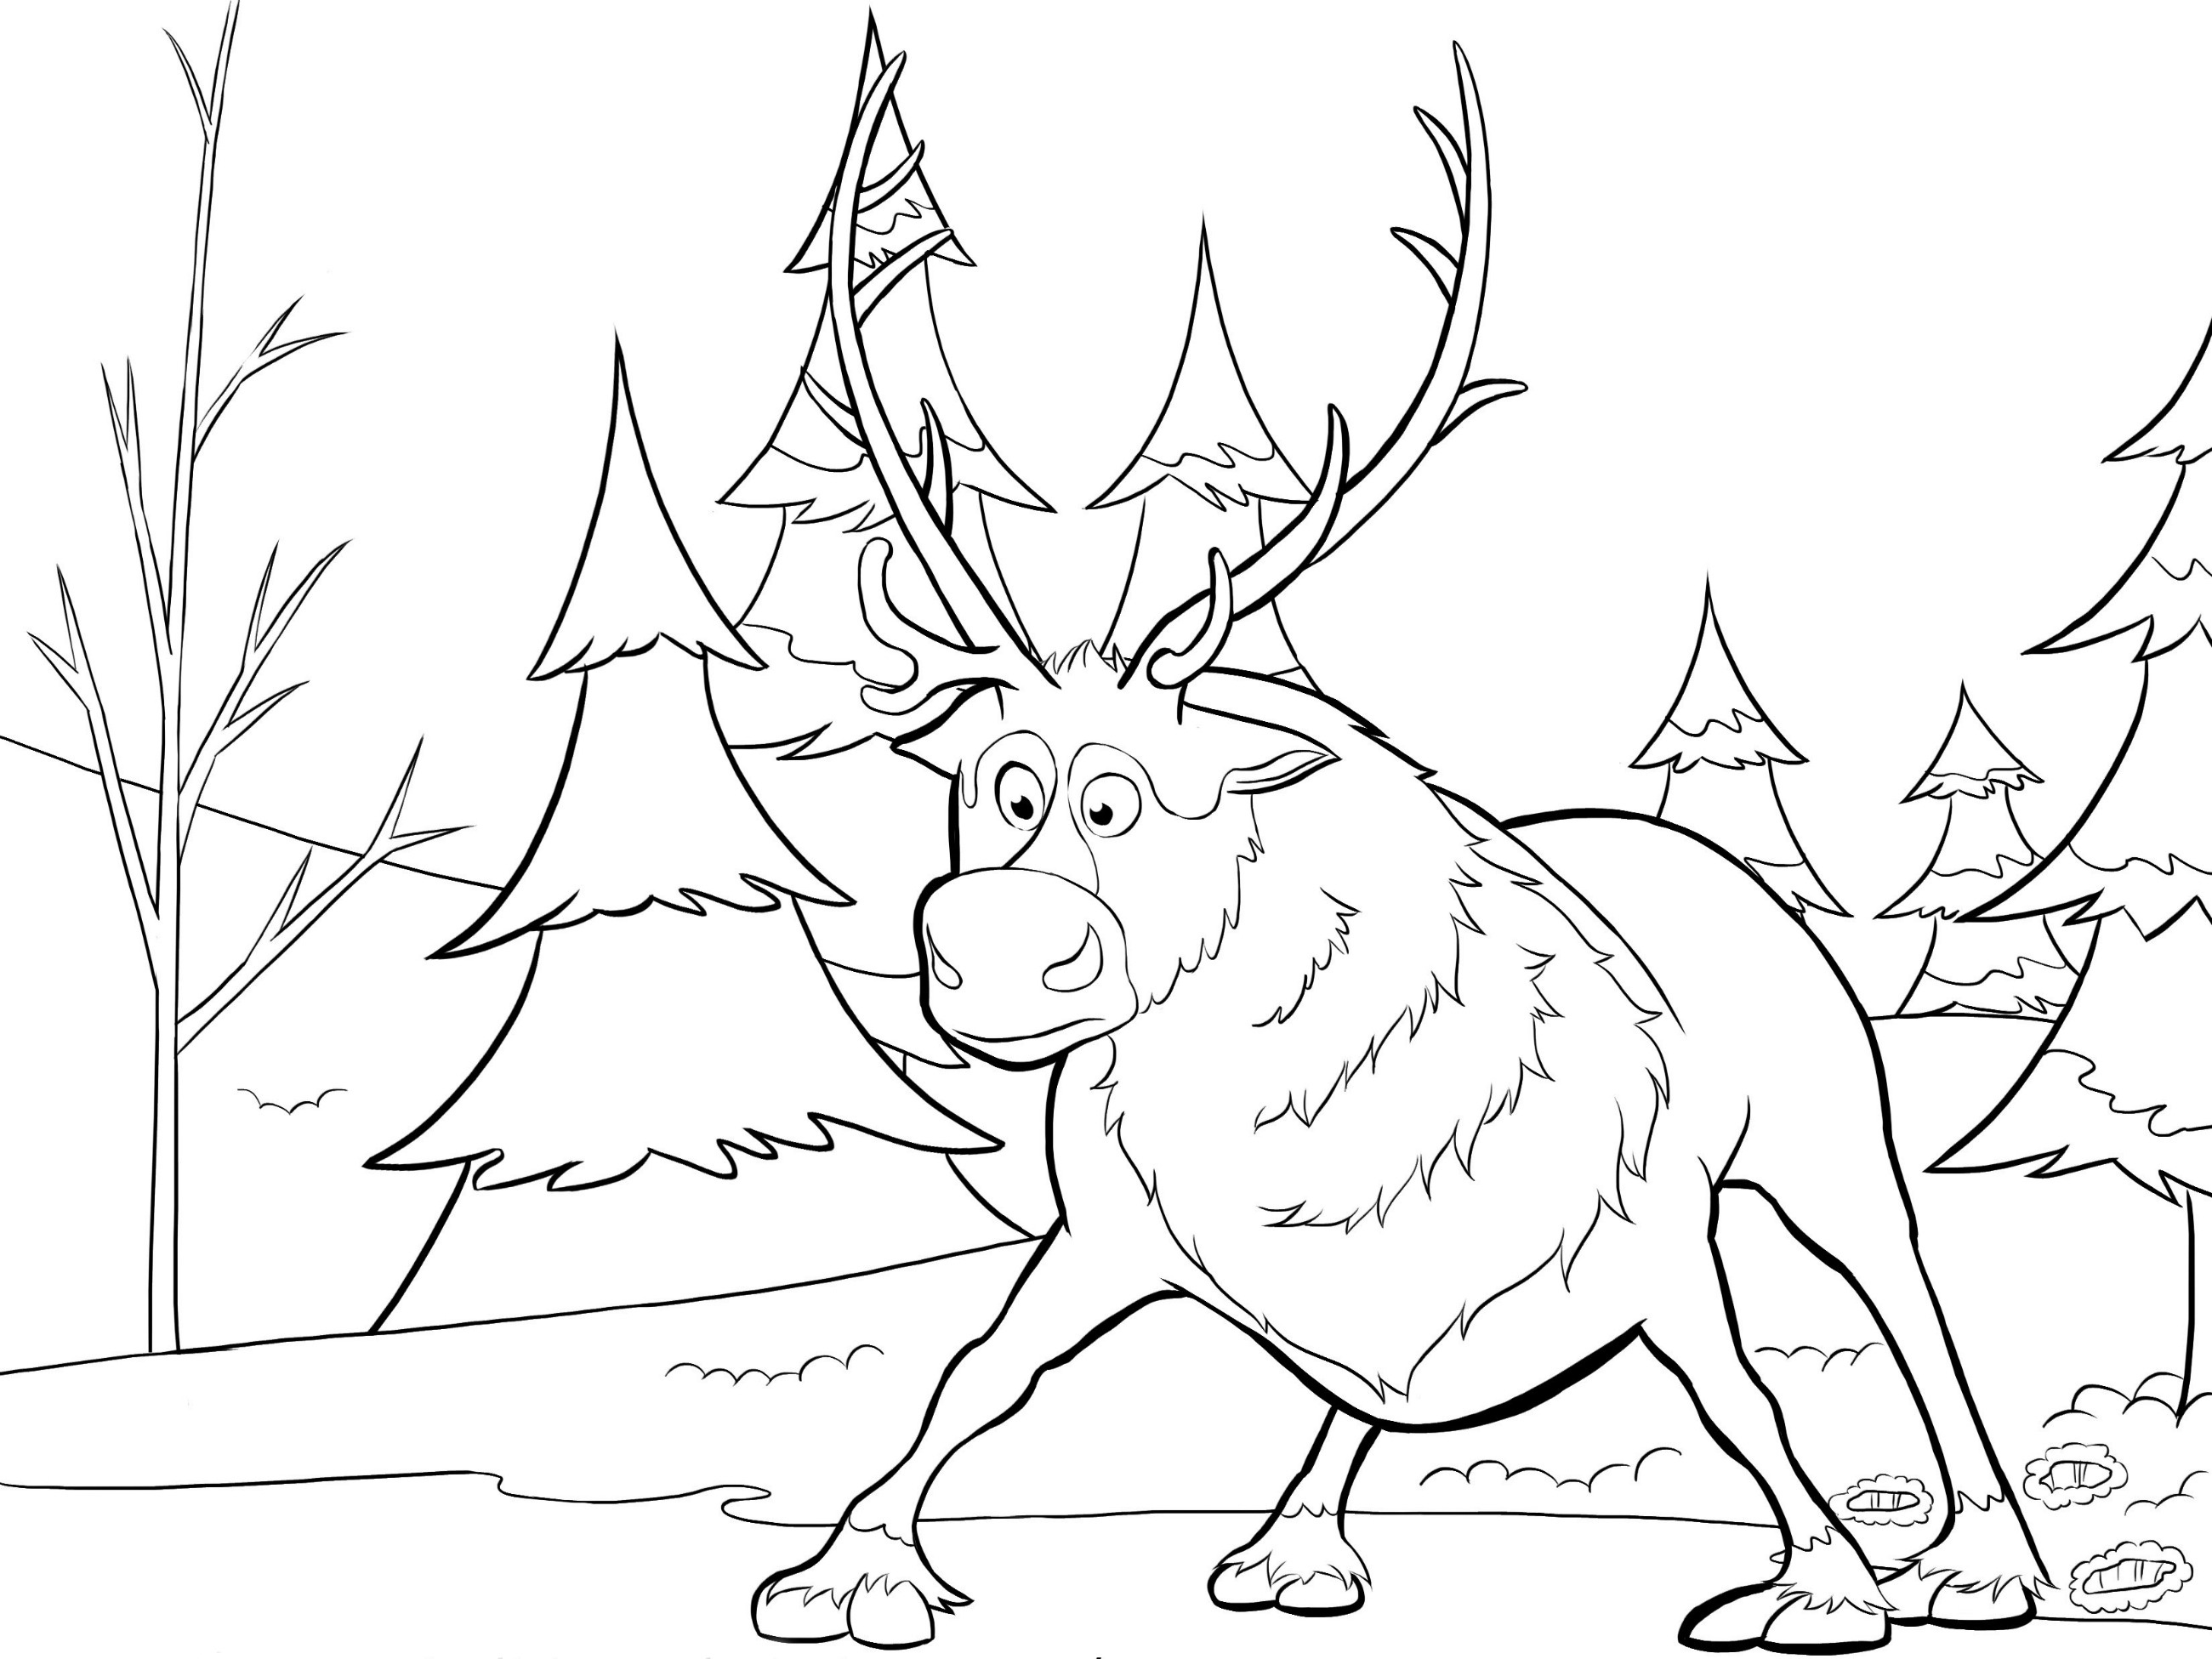 Free Printable Frozen Coloring Pages For Kids - Best Coloring Pages - Free Printable Coloring Pages Disney Frozen